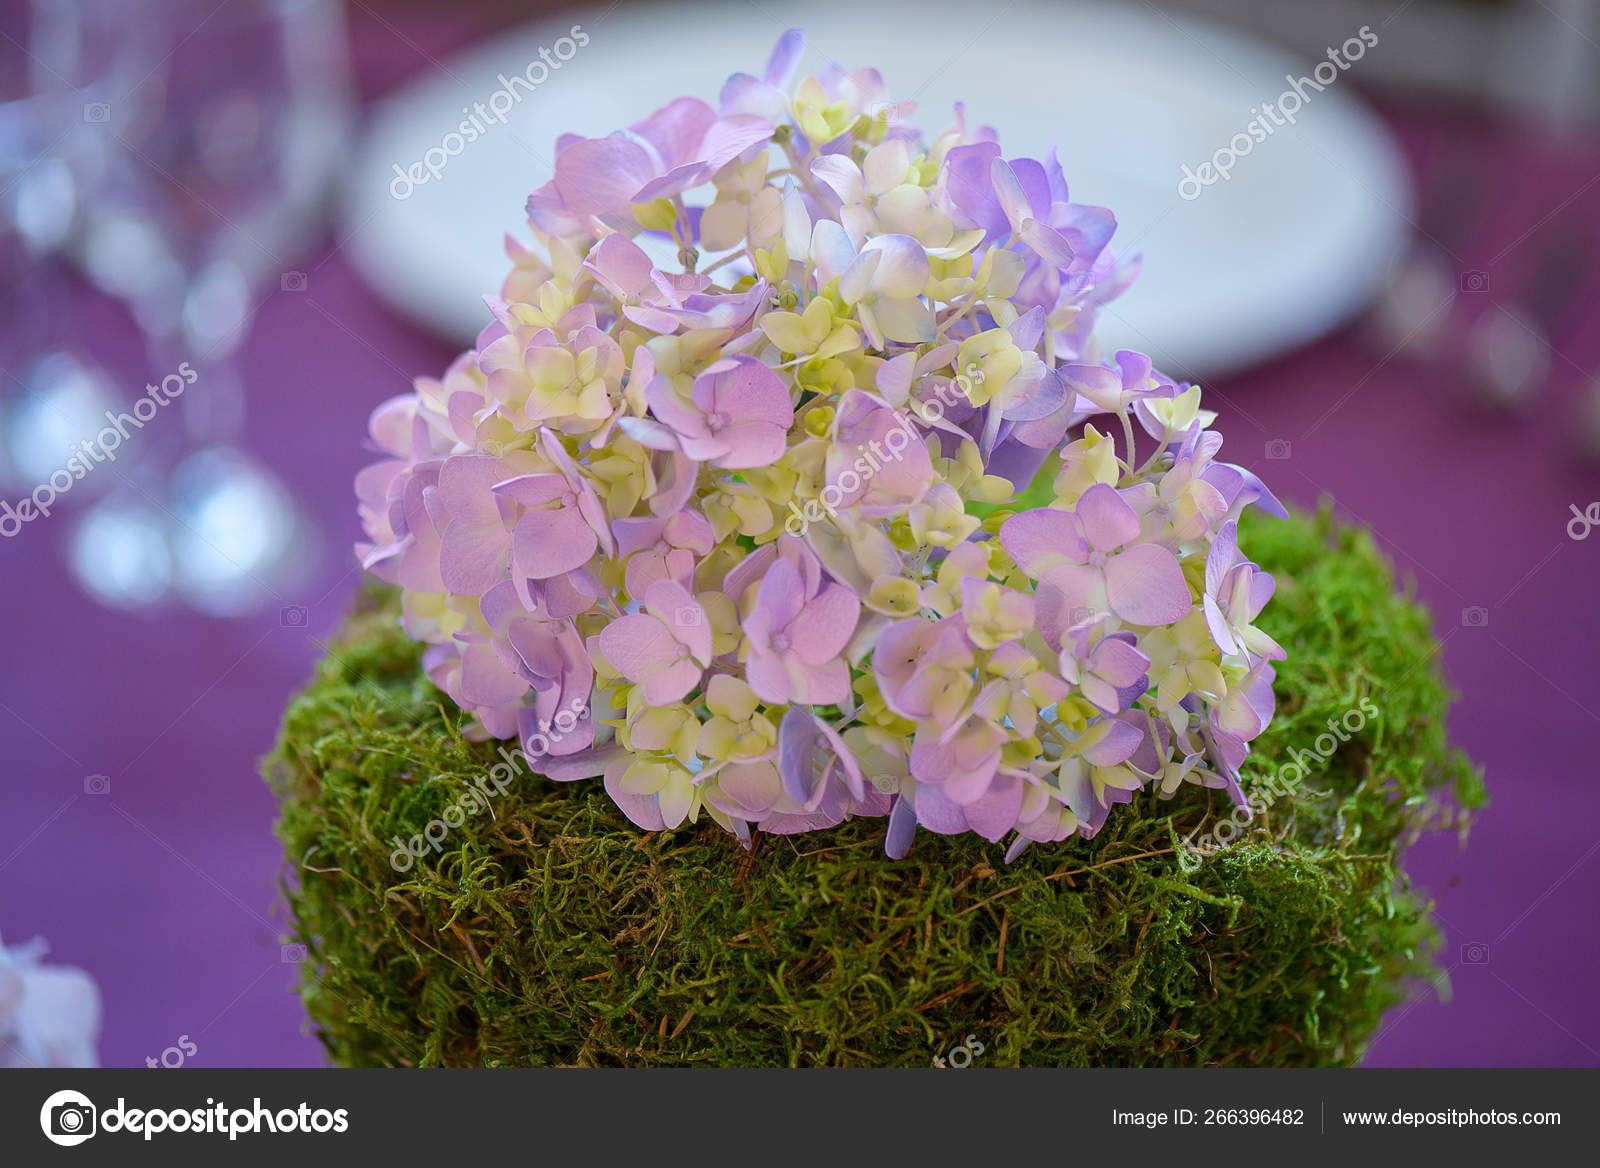 Floral Arrangement Formal Dining Table Centerpiece Featuring Cluster Purple  Hydrangeas — Stock Photo © AnaIacobPhotography #266396482